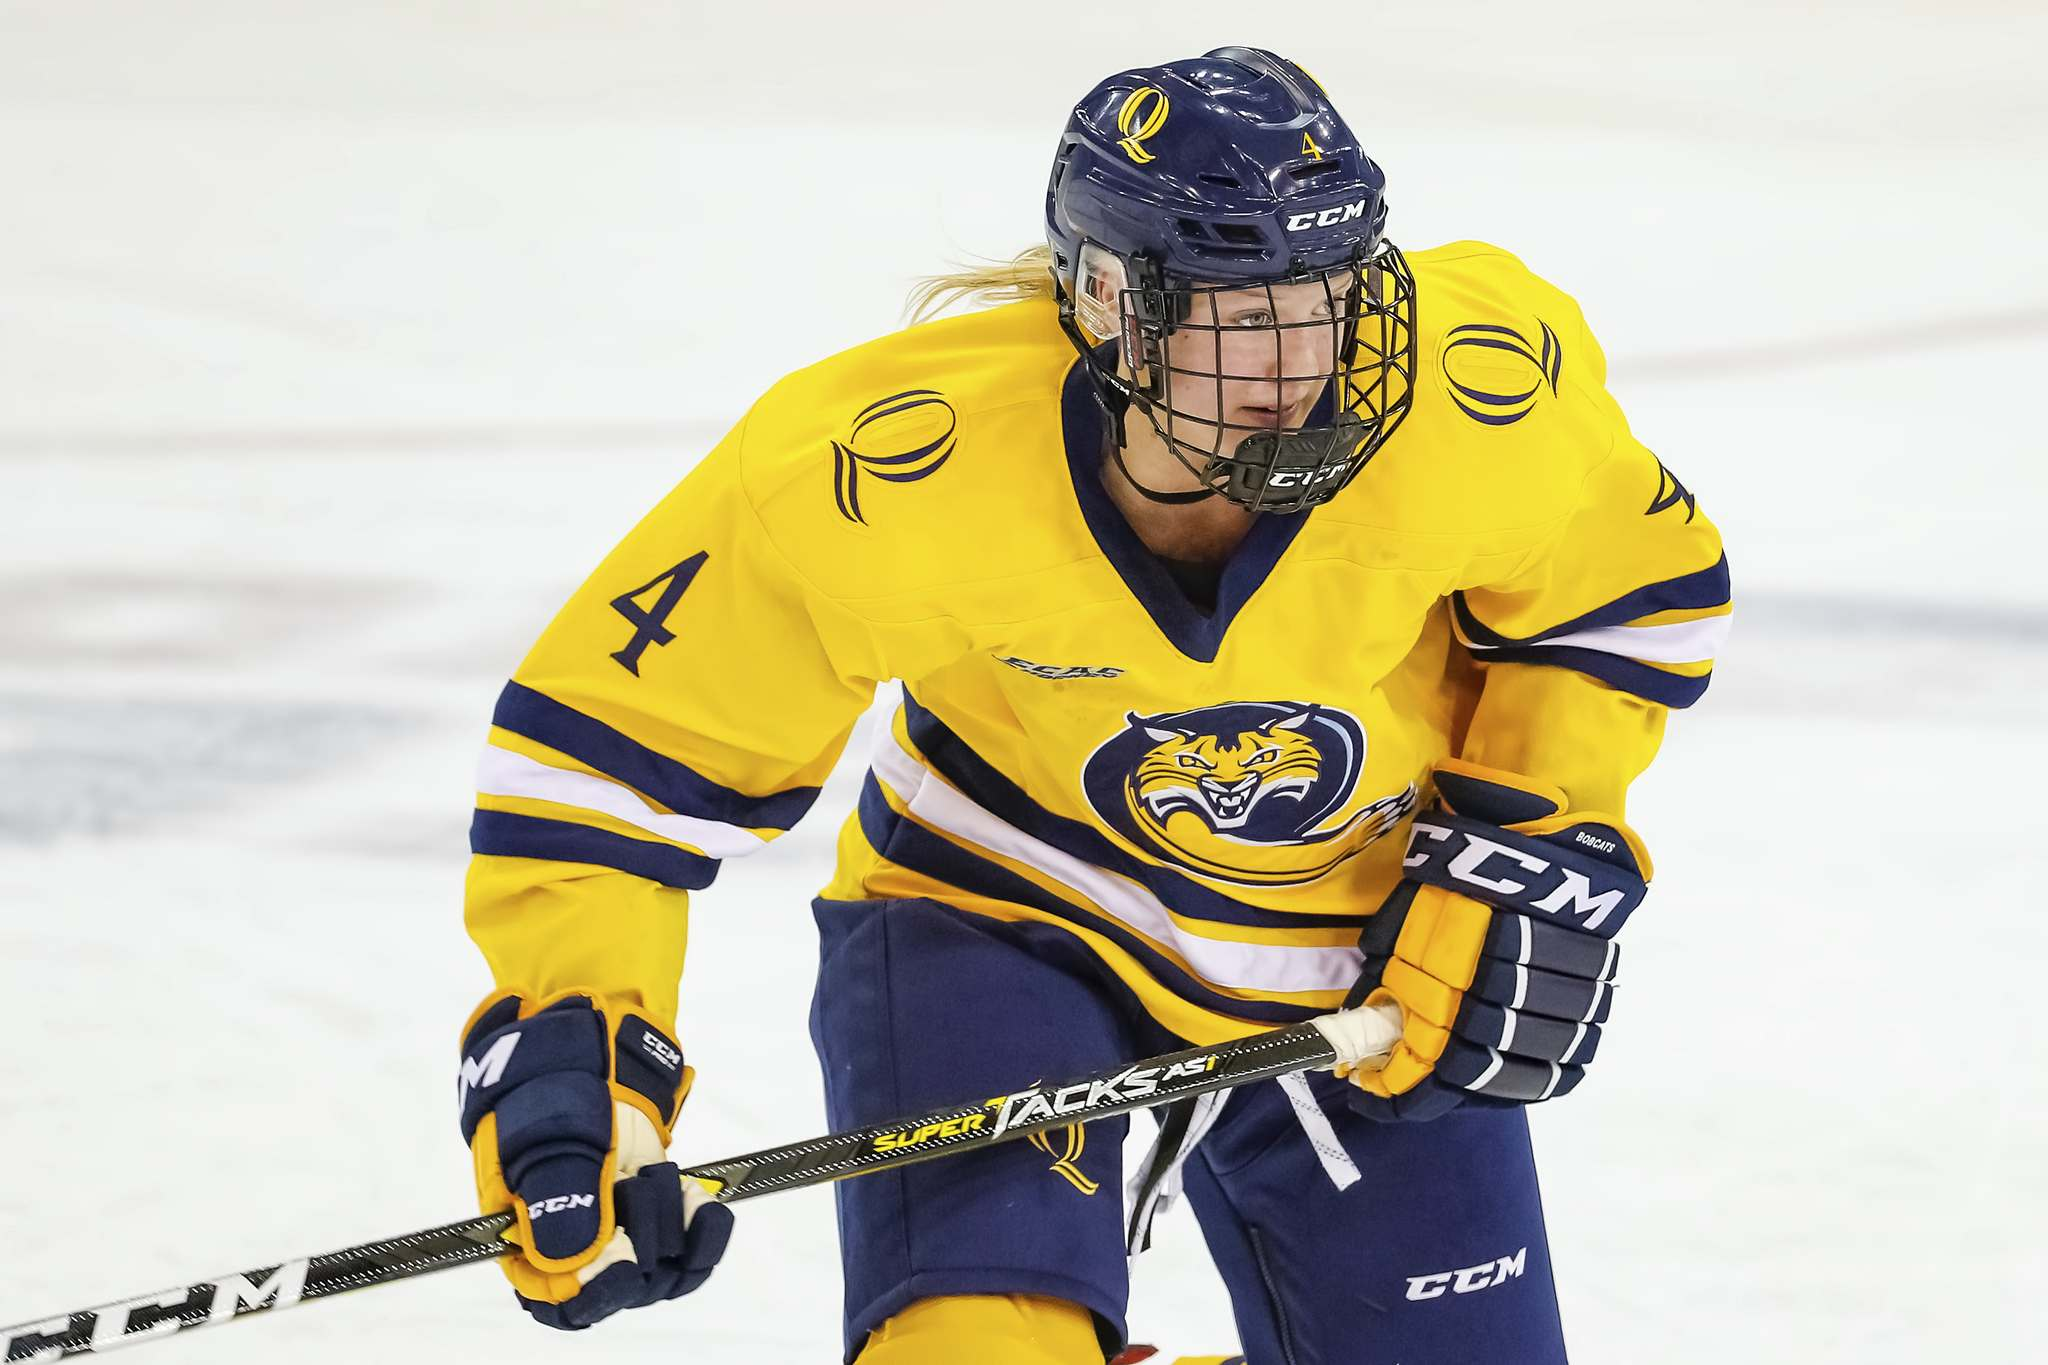 """It's fun being in a league and having something to compete for and I think that's what made the Sports School Challenge so exciting,"" says Kate Mackenzie, a St. Mary's alum who spent four seasons playing for the NCAA's Quinnipiac University Bobcats. (Rob Rasmussen photo)"